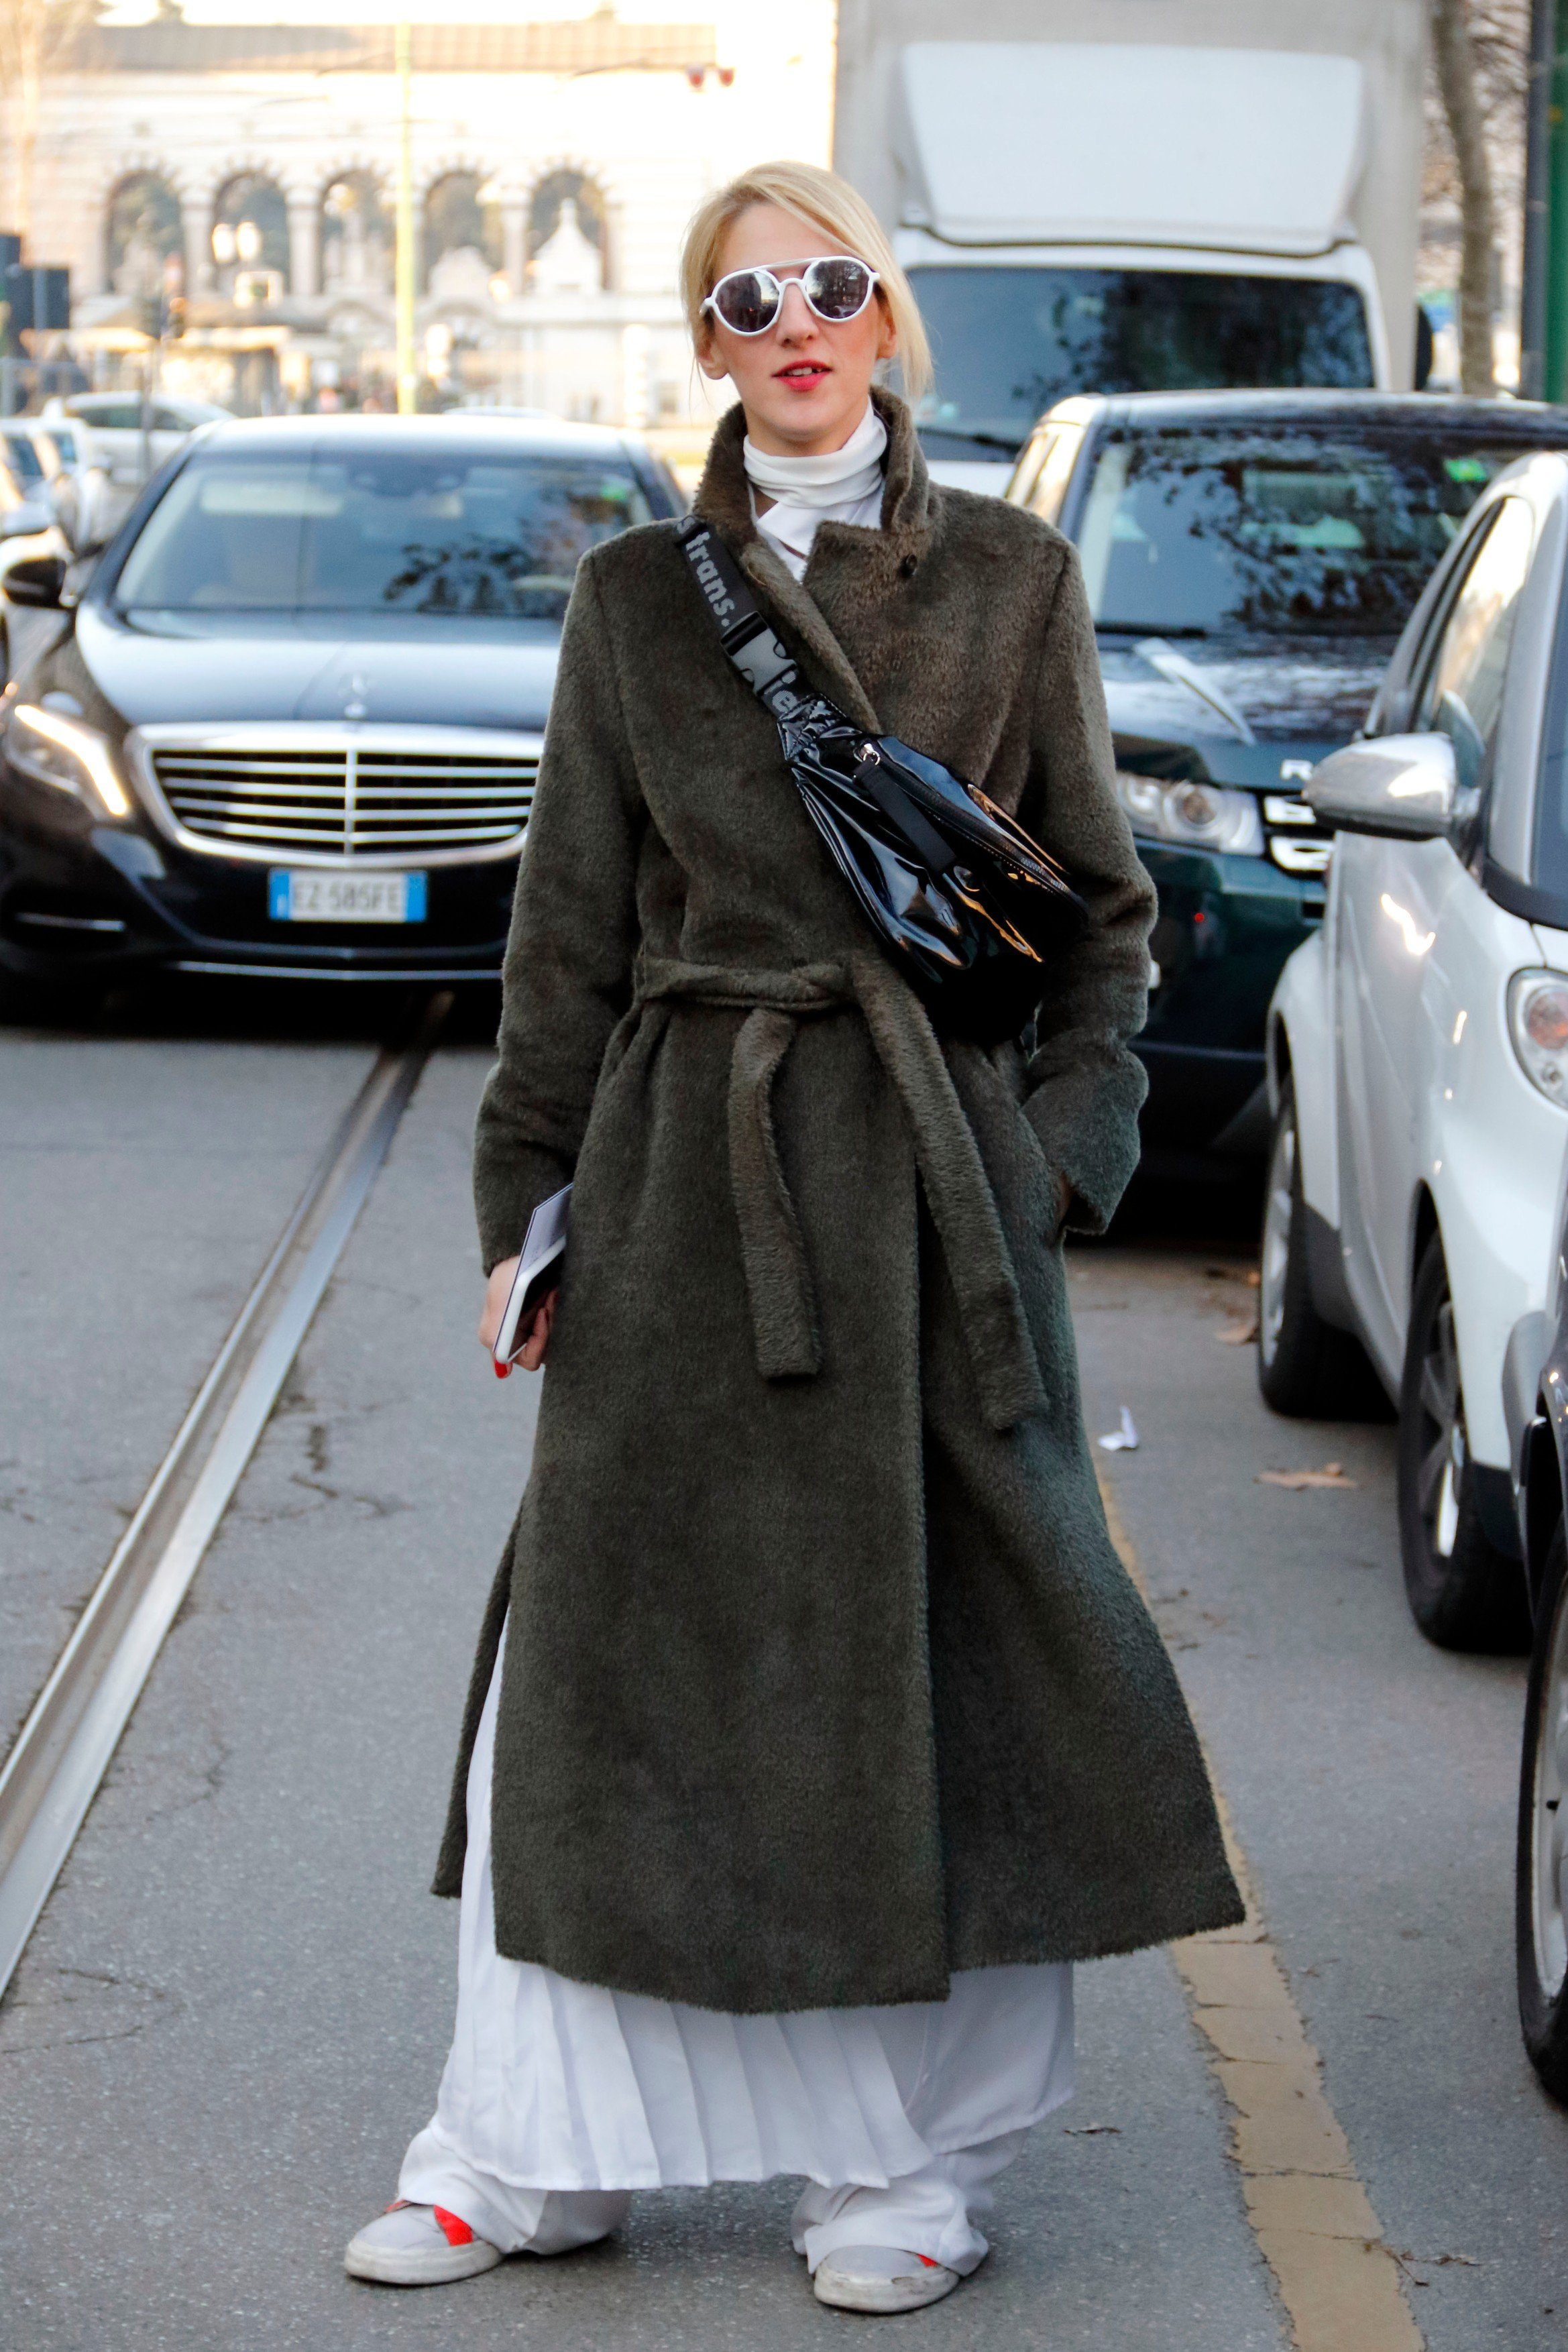 Guest arriving at neil barret fashion show in Milan, Italy, January 13, 2018., Image: 360101262, License: Rights-managed, Restrictions: , Model Release: no, Credit line: Profimedia, Abaca